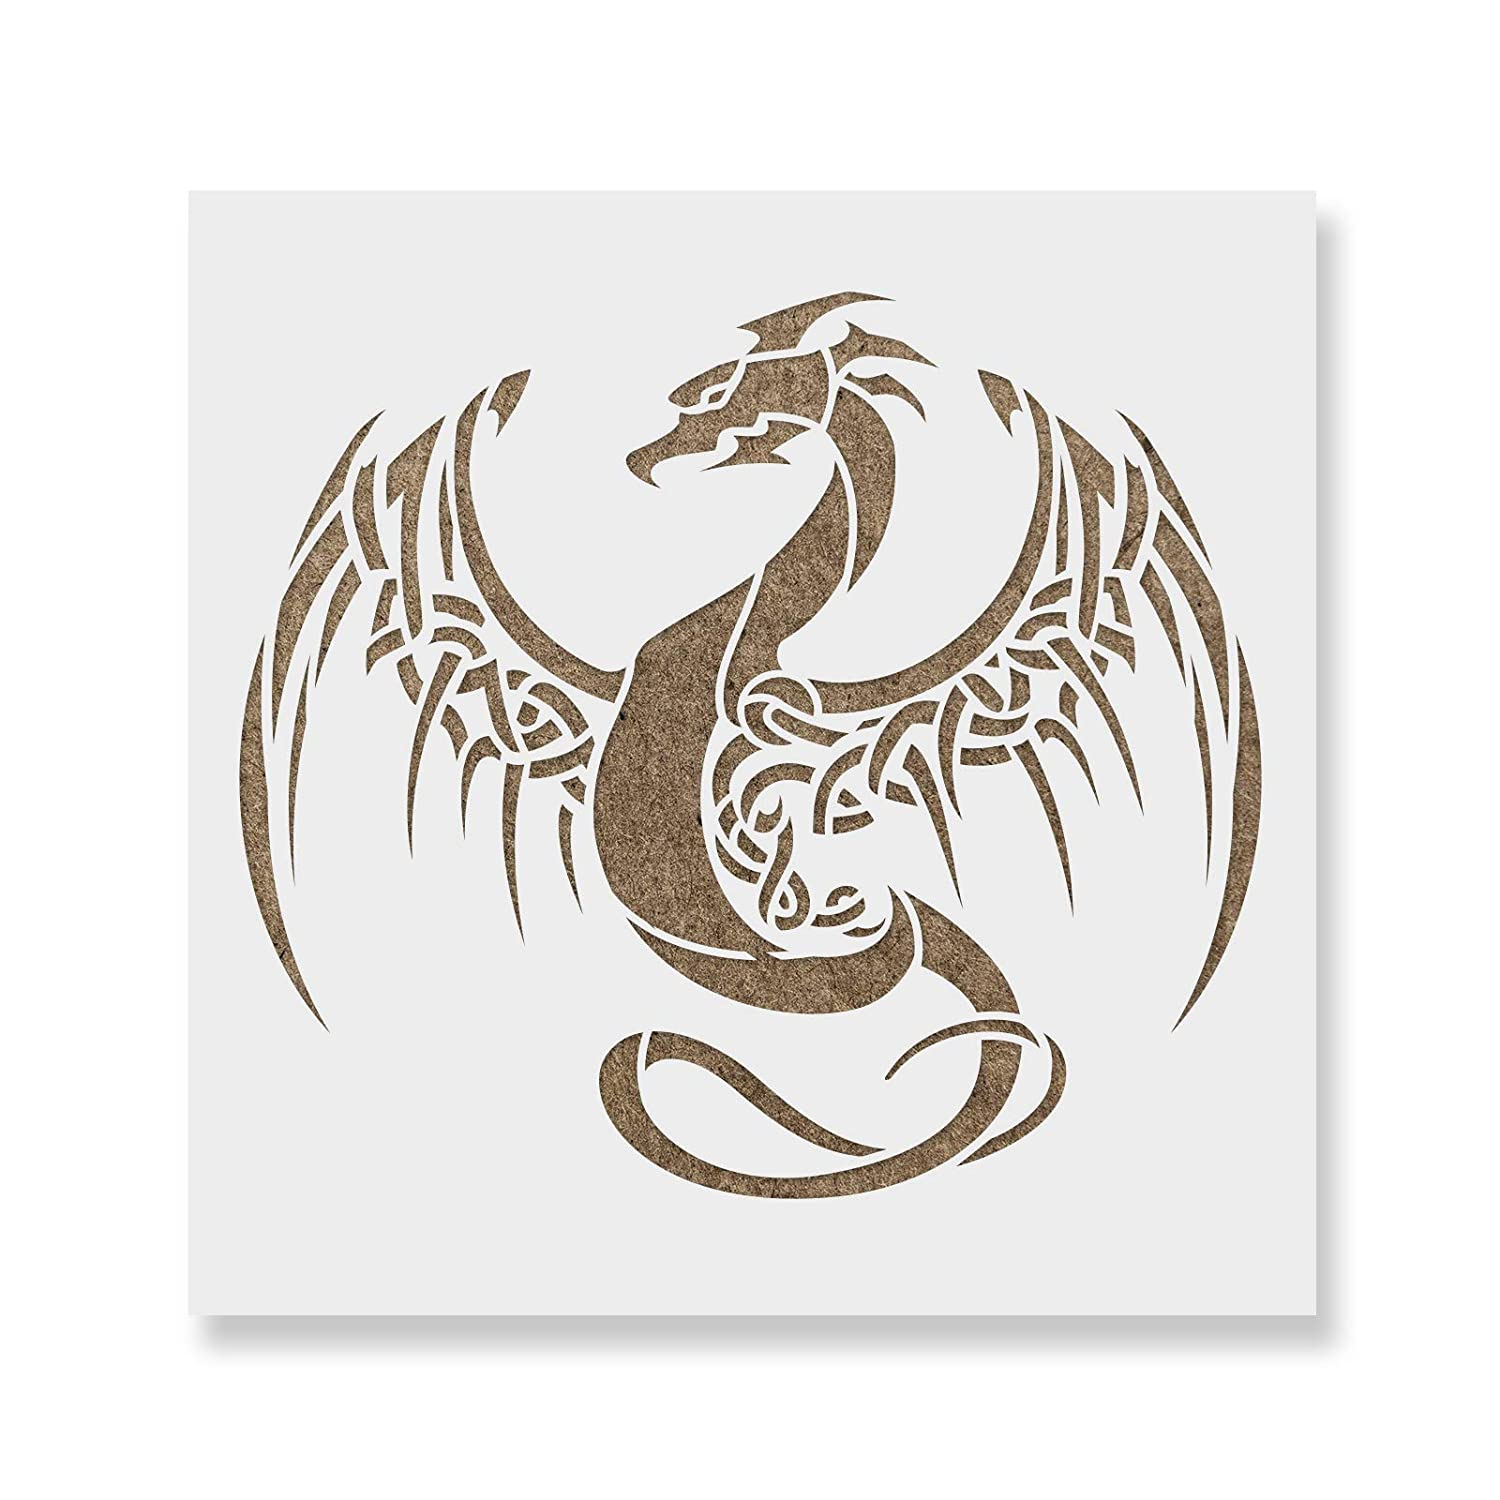 photograph relating to Dragon Stencils Printable known as Dragon Stencil Template - Reusable Stencil with Many